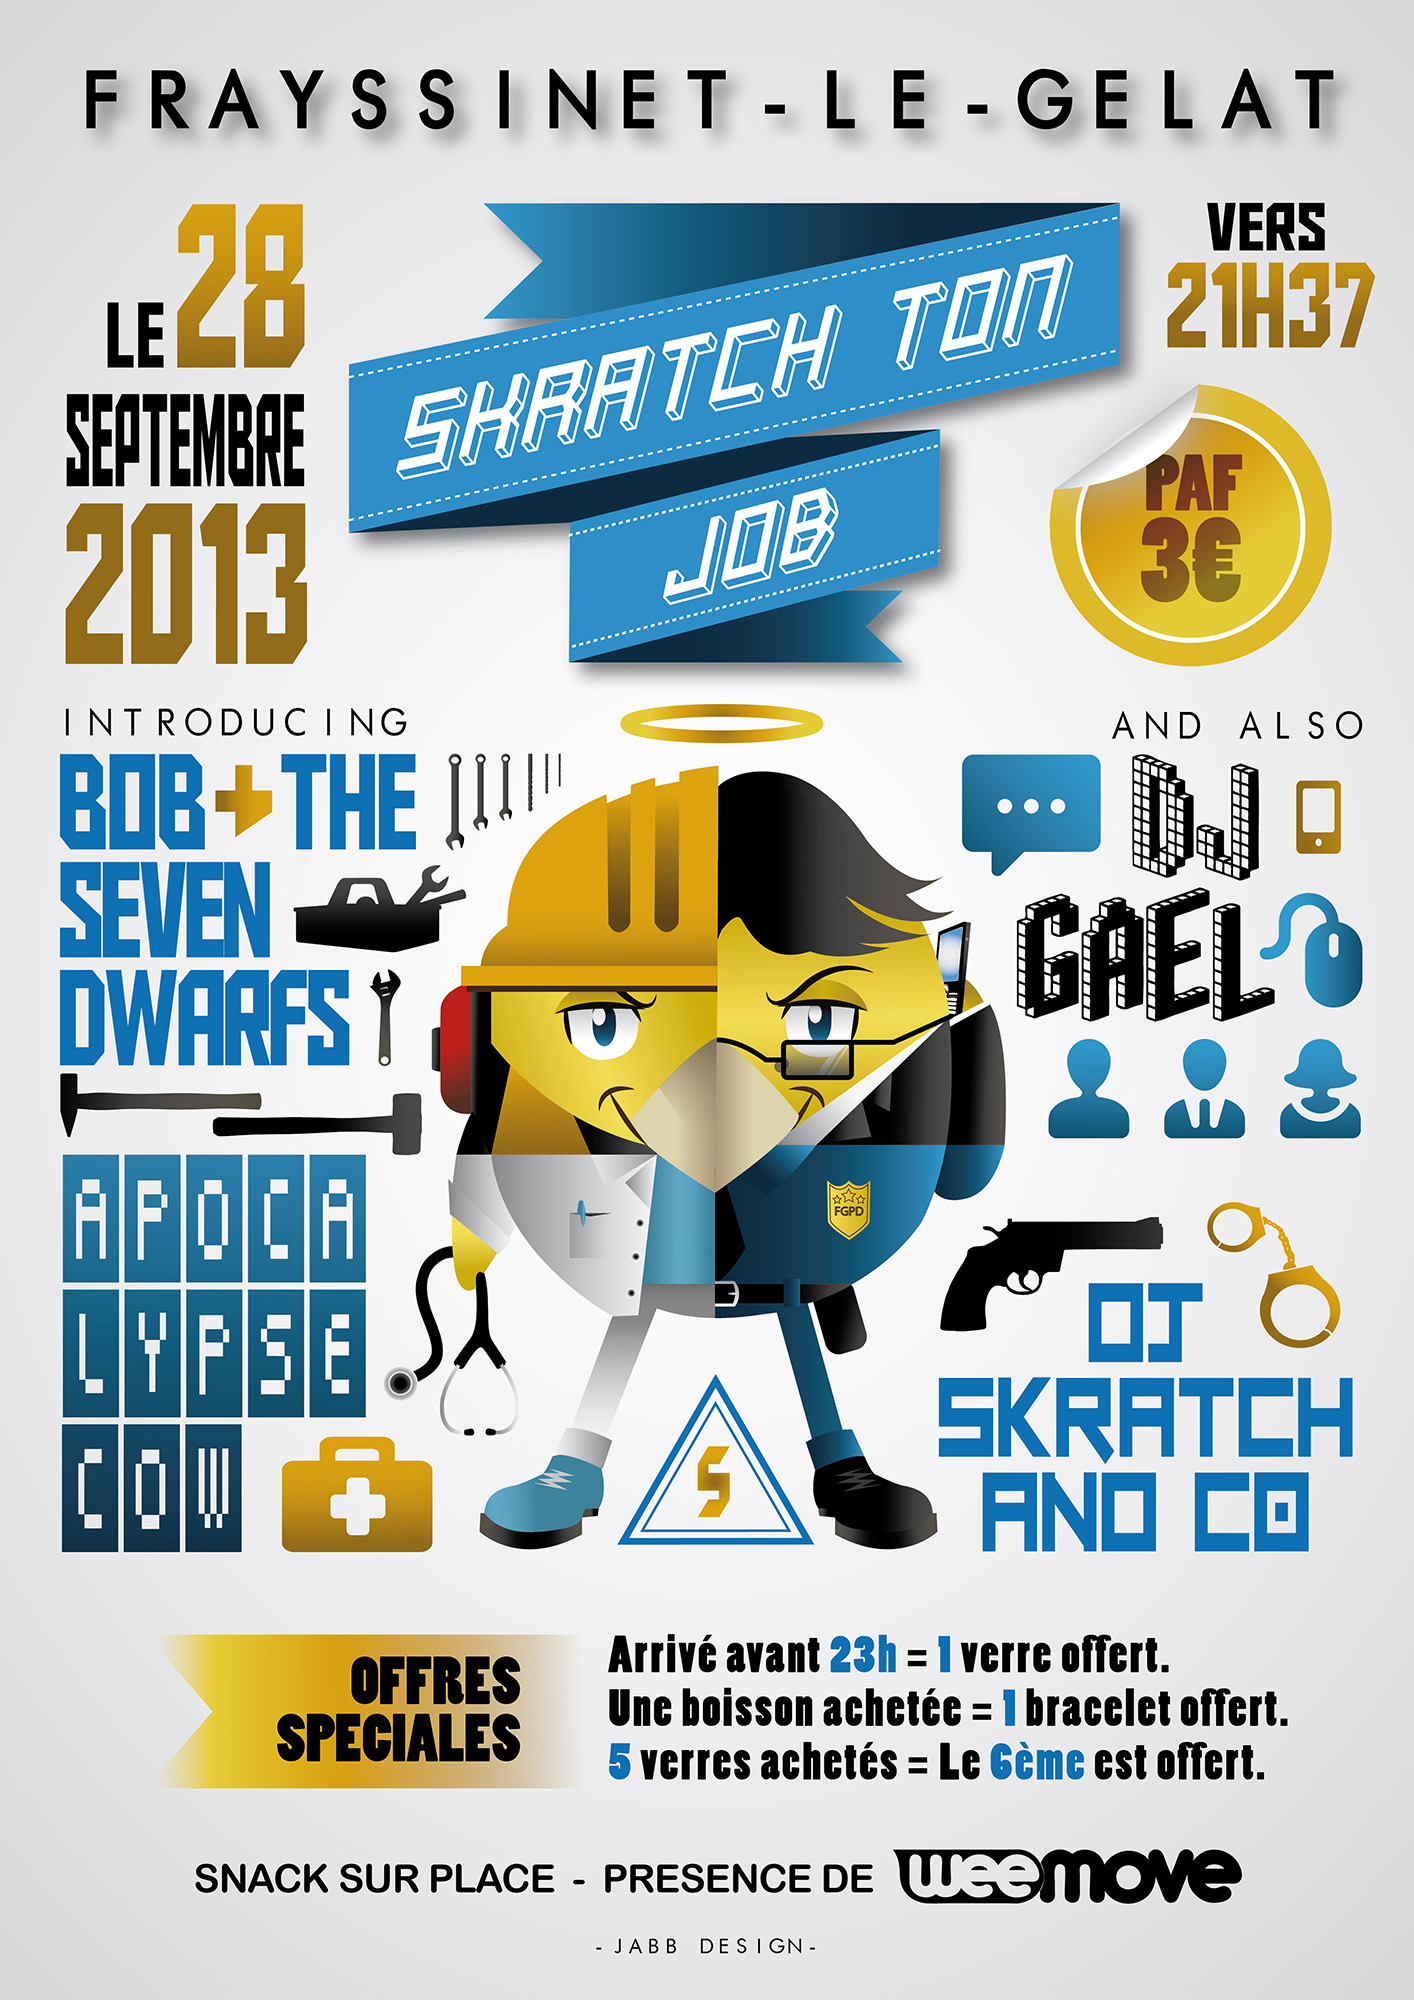 Skratch ton job